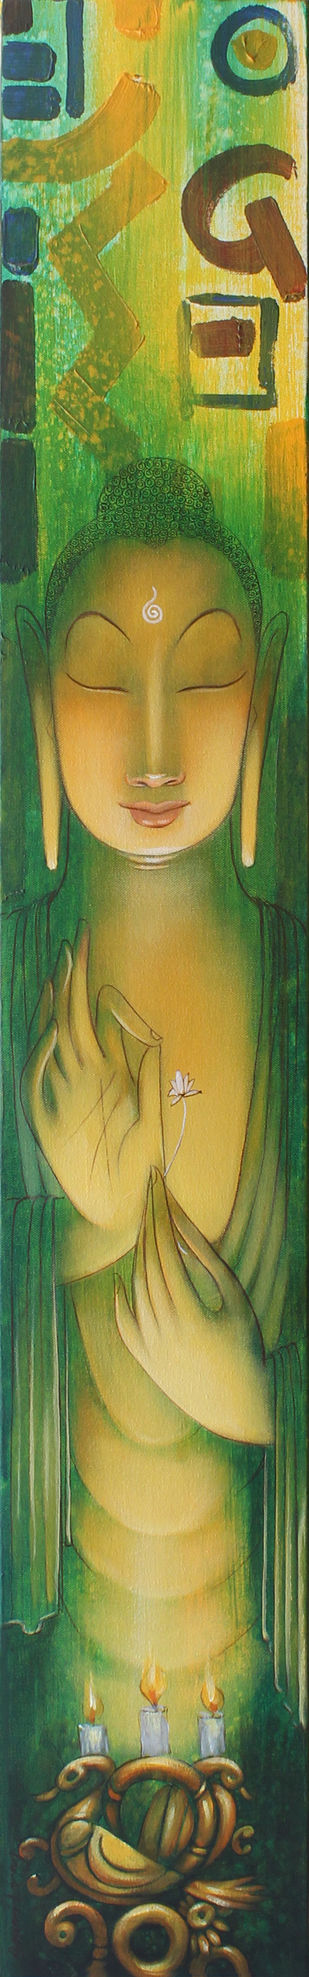 buddha by Amritraj Koban, Expressionism Painting, Acrylic on Canvas, Green color